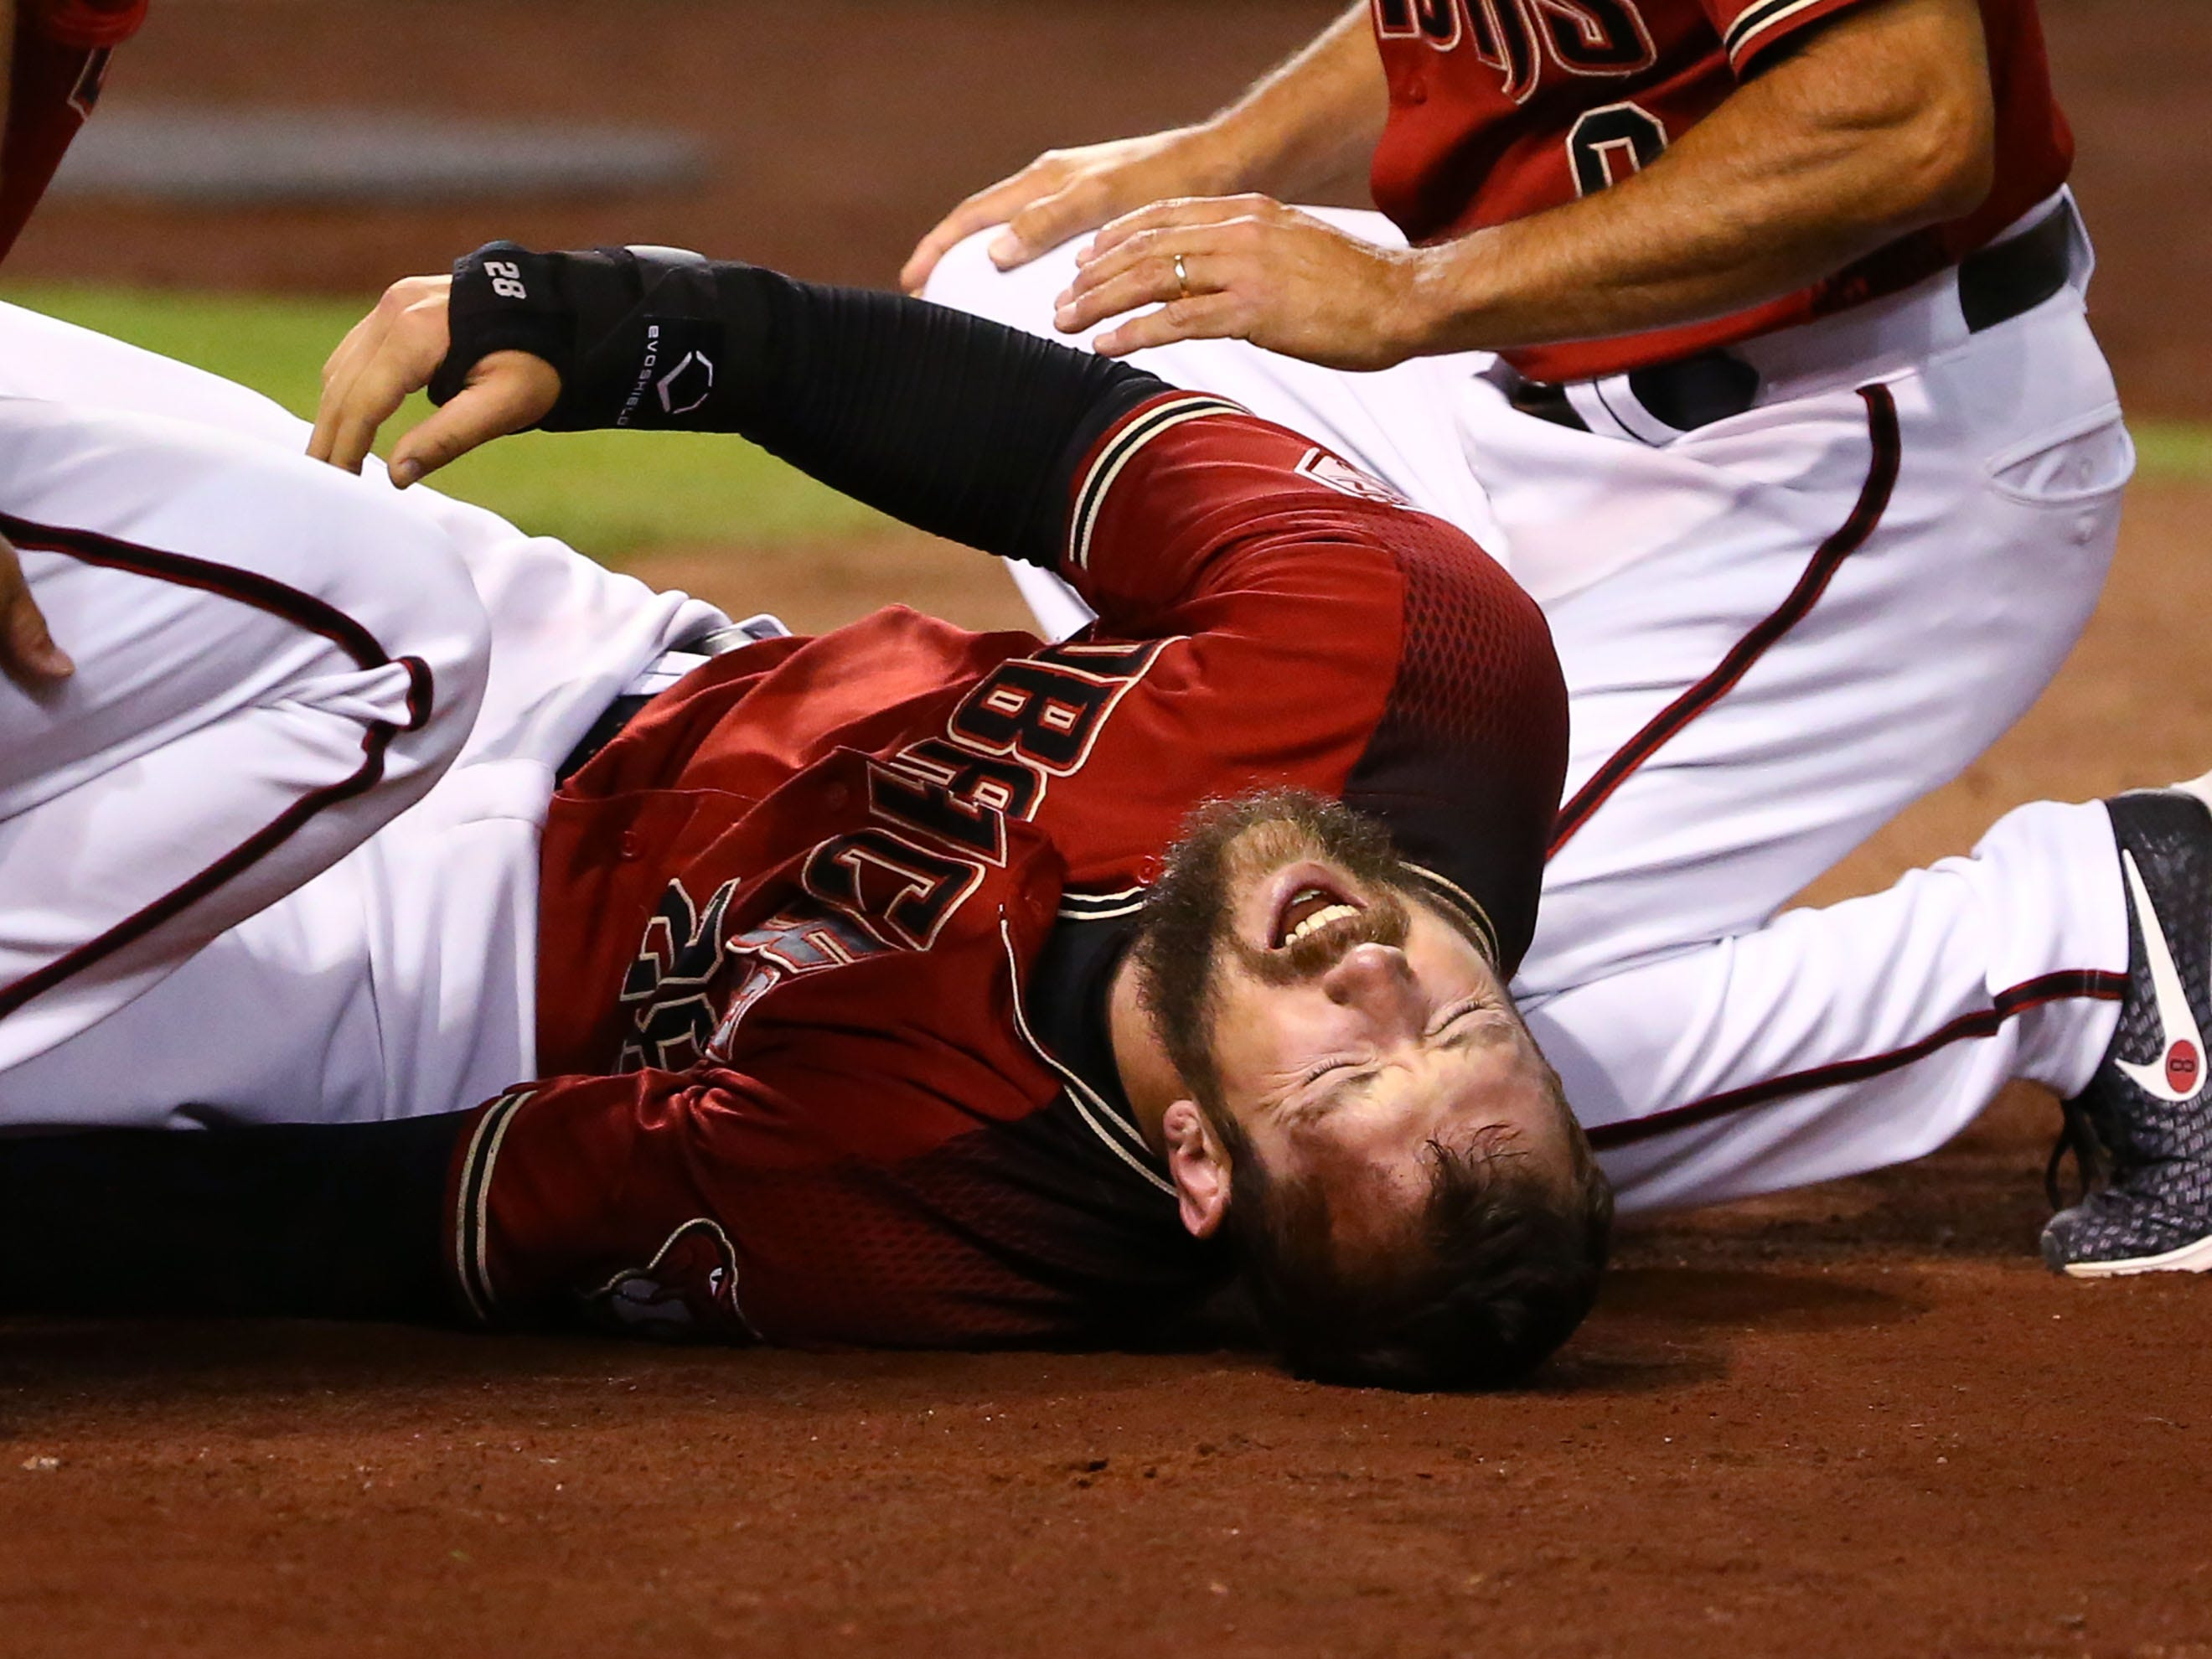 Arizona Diamondbacks Steven Souza Jr. reacts after suffering an injury to his leg after scoring against the Chicago White Sox in the fourth inning during a spring training game on Mar. 25, 2019 at Chase Field in Phoenix, Ariz. Steven Souza Jr. was carried from the field.